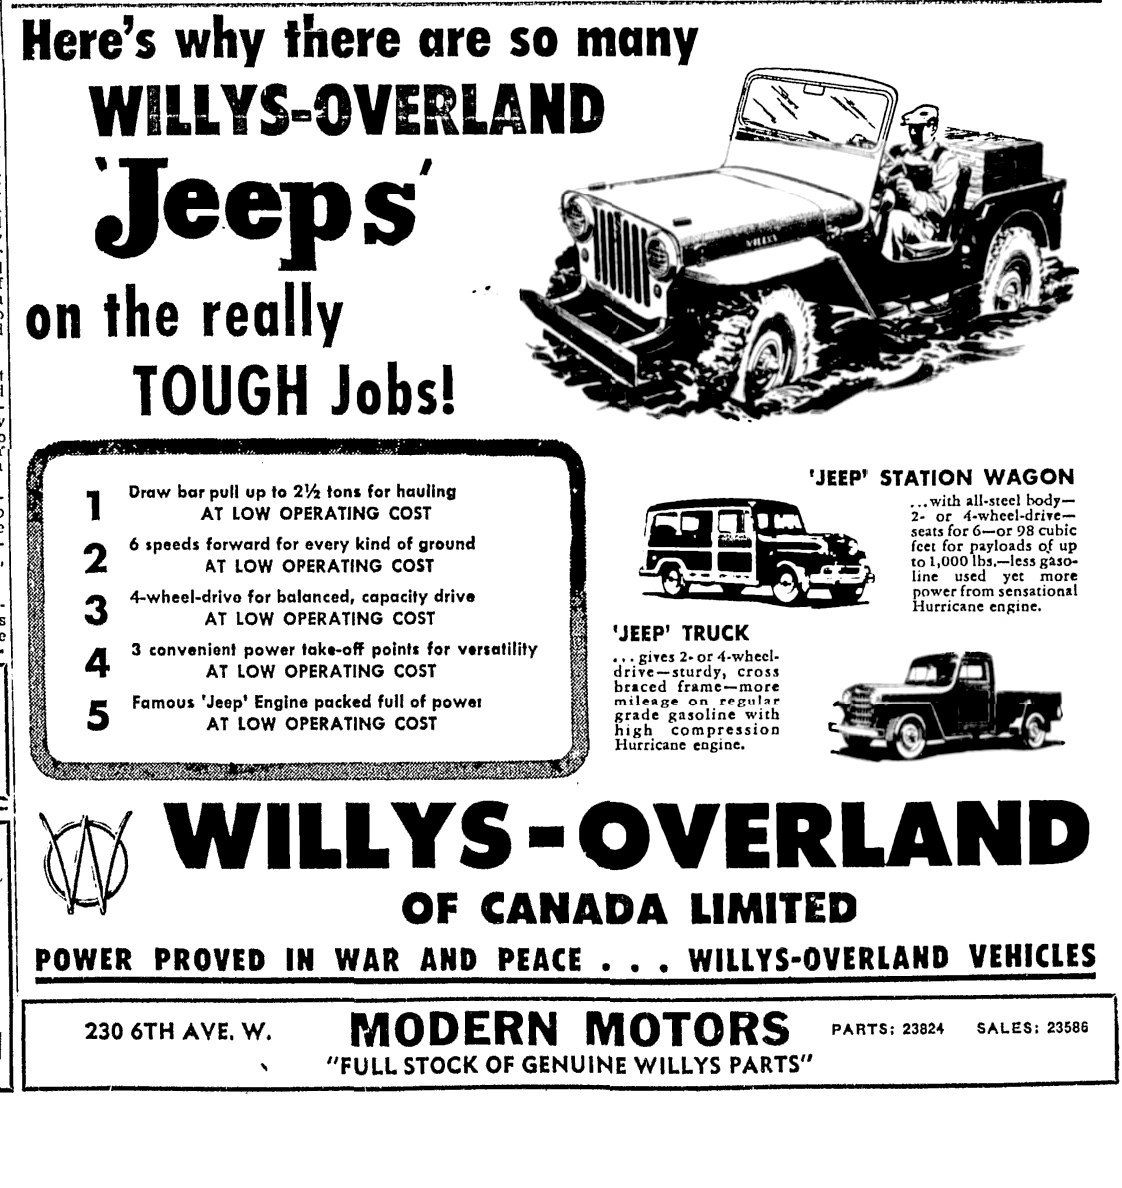 what makes a willys cj